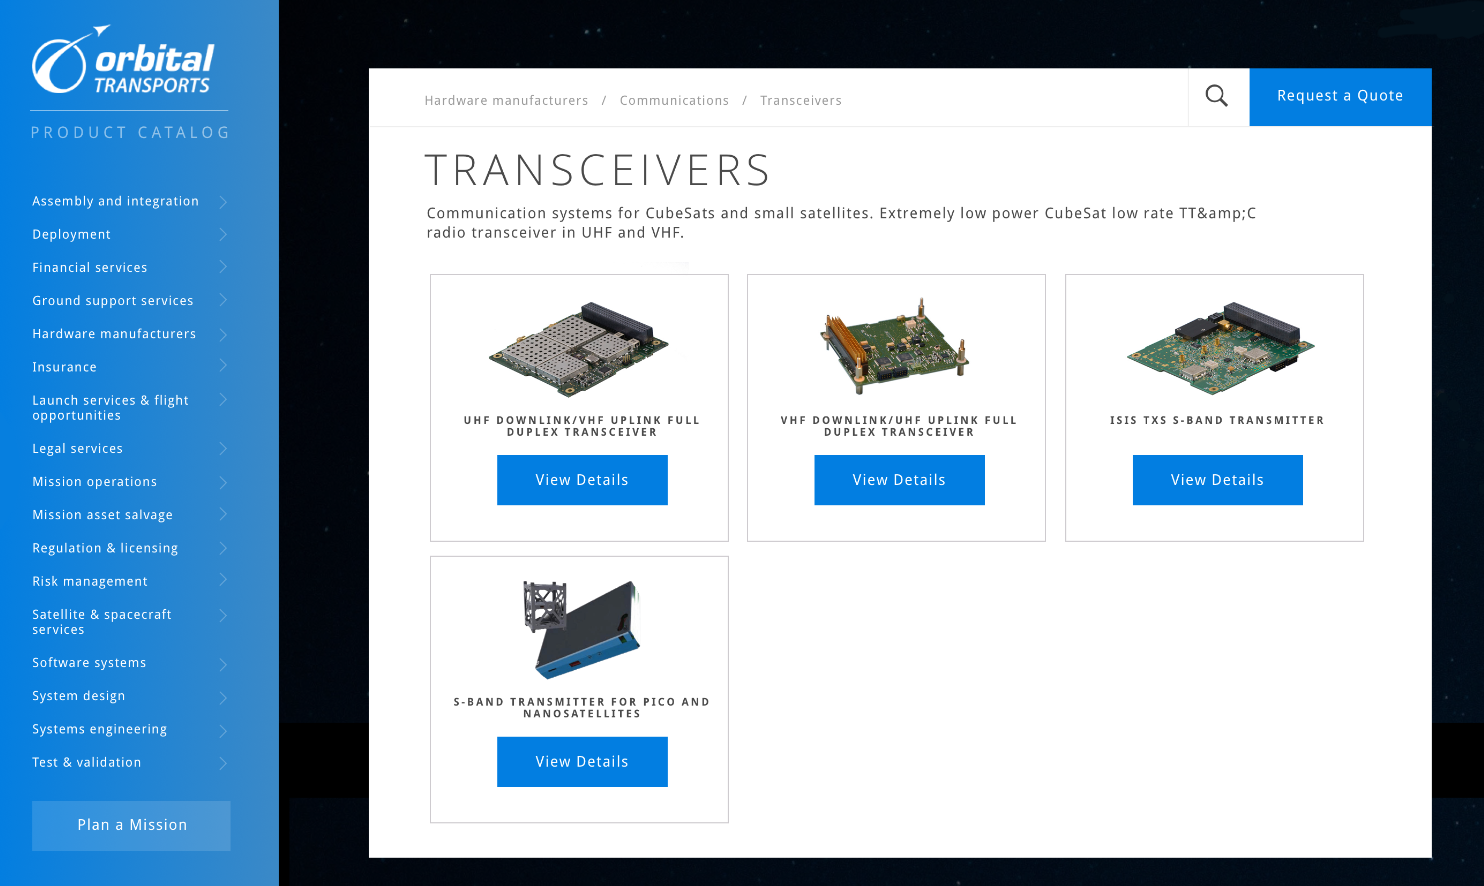 Orbital Transports new catalog product page layout